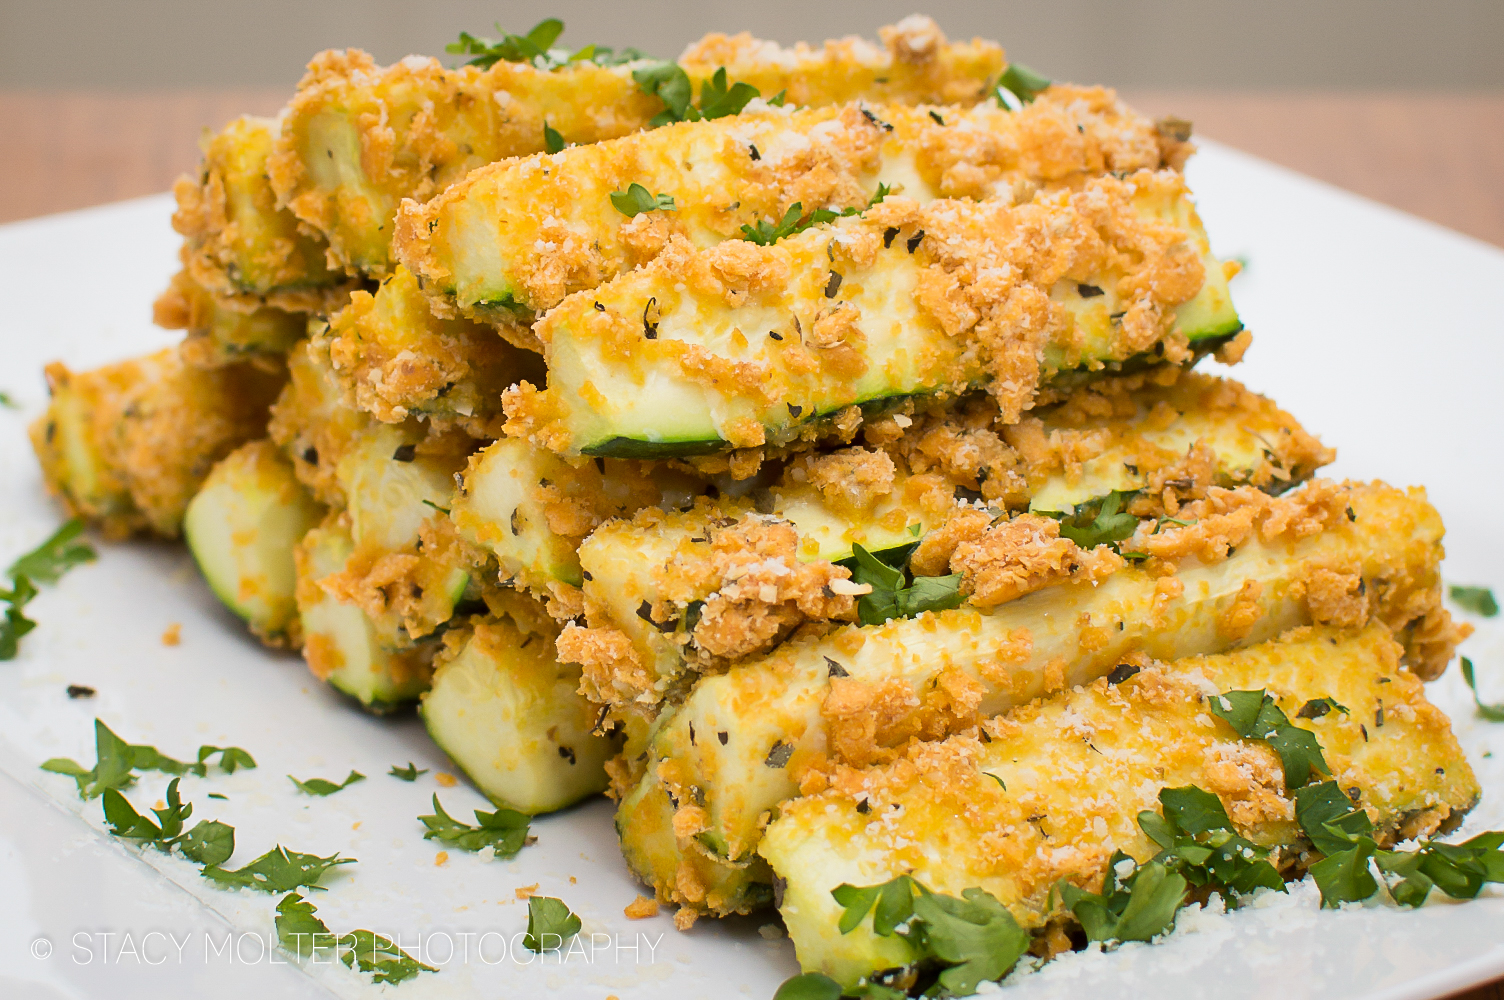 Recipe for Zucchini Sticks - Bing images